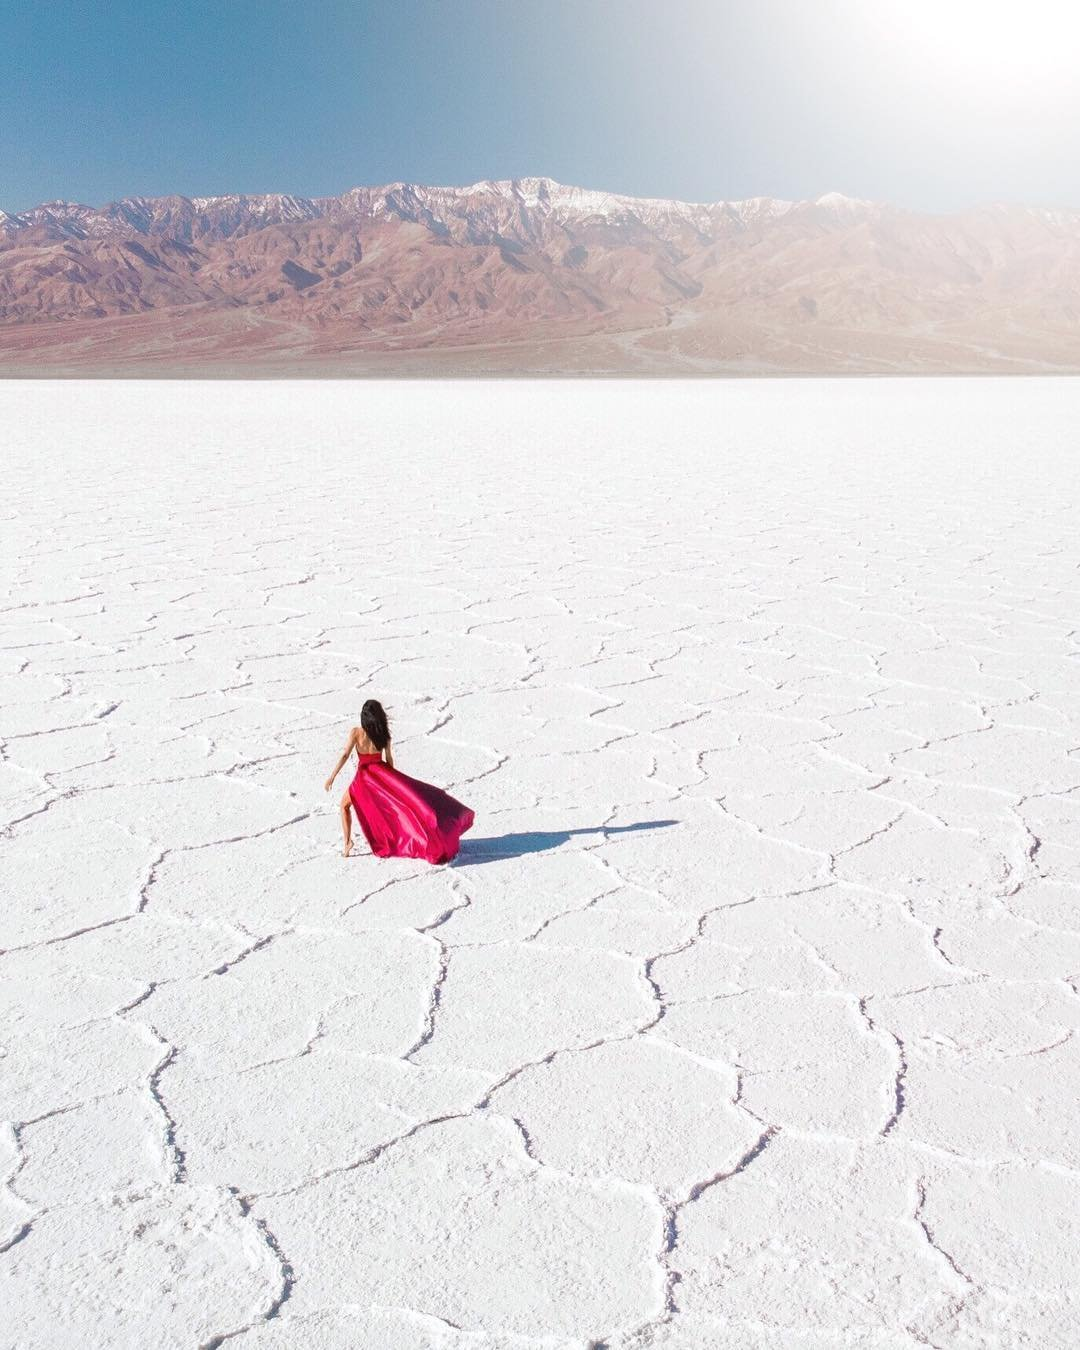 Like a dream ❤️ Prior to this trip, I imagined these images in my head for weeks. When we finally arrived in Death Valley, I ran off with my drone to play with the composition, light and my dress. All the elements came together perfectly and these are the results. Like a dream that came to life ✨ #nomadicfareinnevada